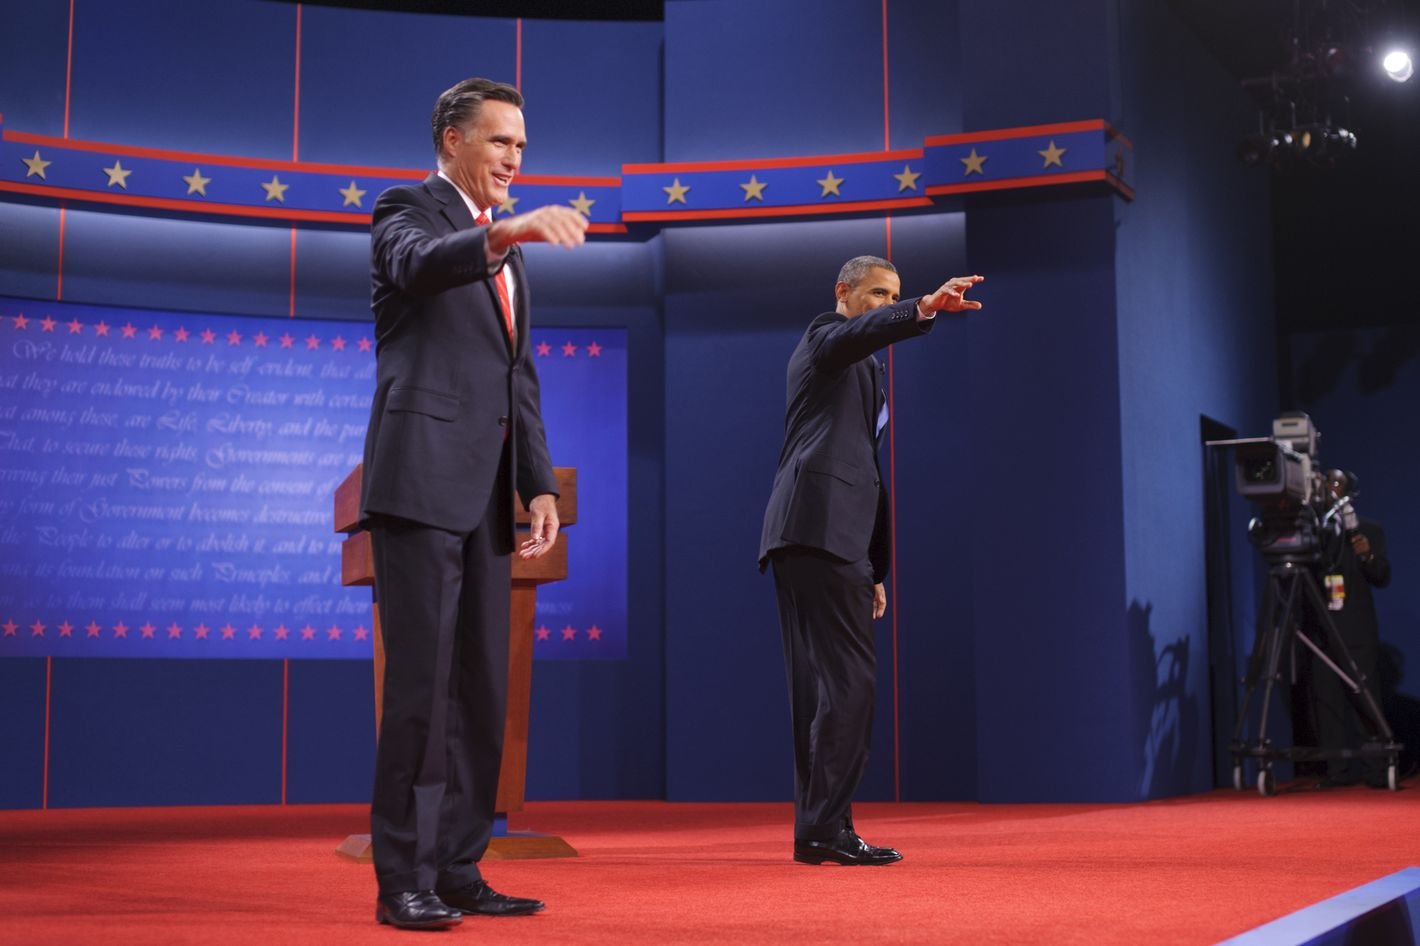 US President Barack Obama and Republican presidential candidate Mitt Romney wave October 3, 2012 after shaking hands as he arrives on stage for the first presidential debate at the University of Denver in Denver, Colorado.